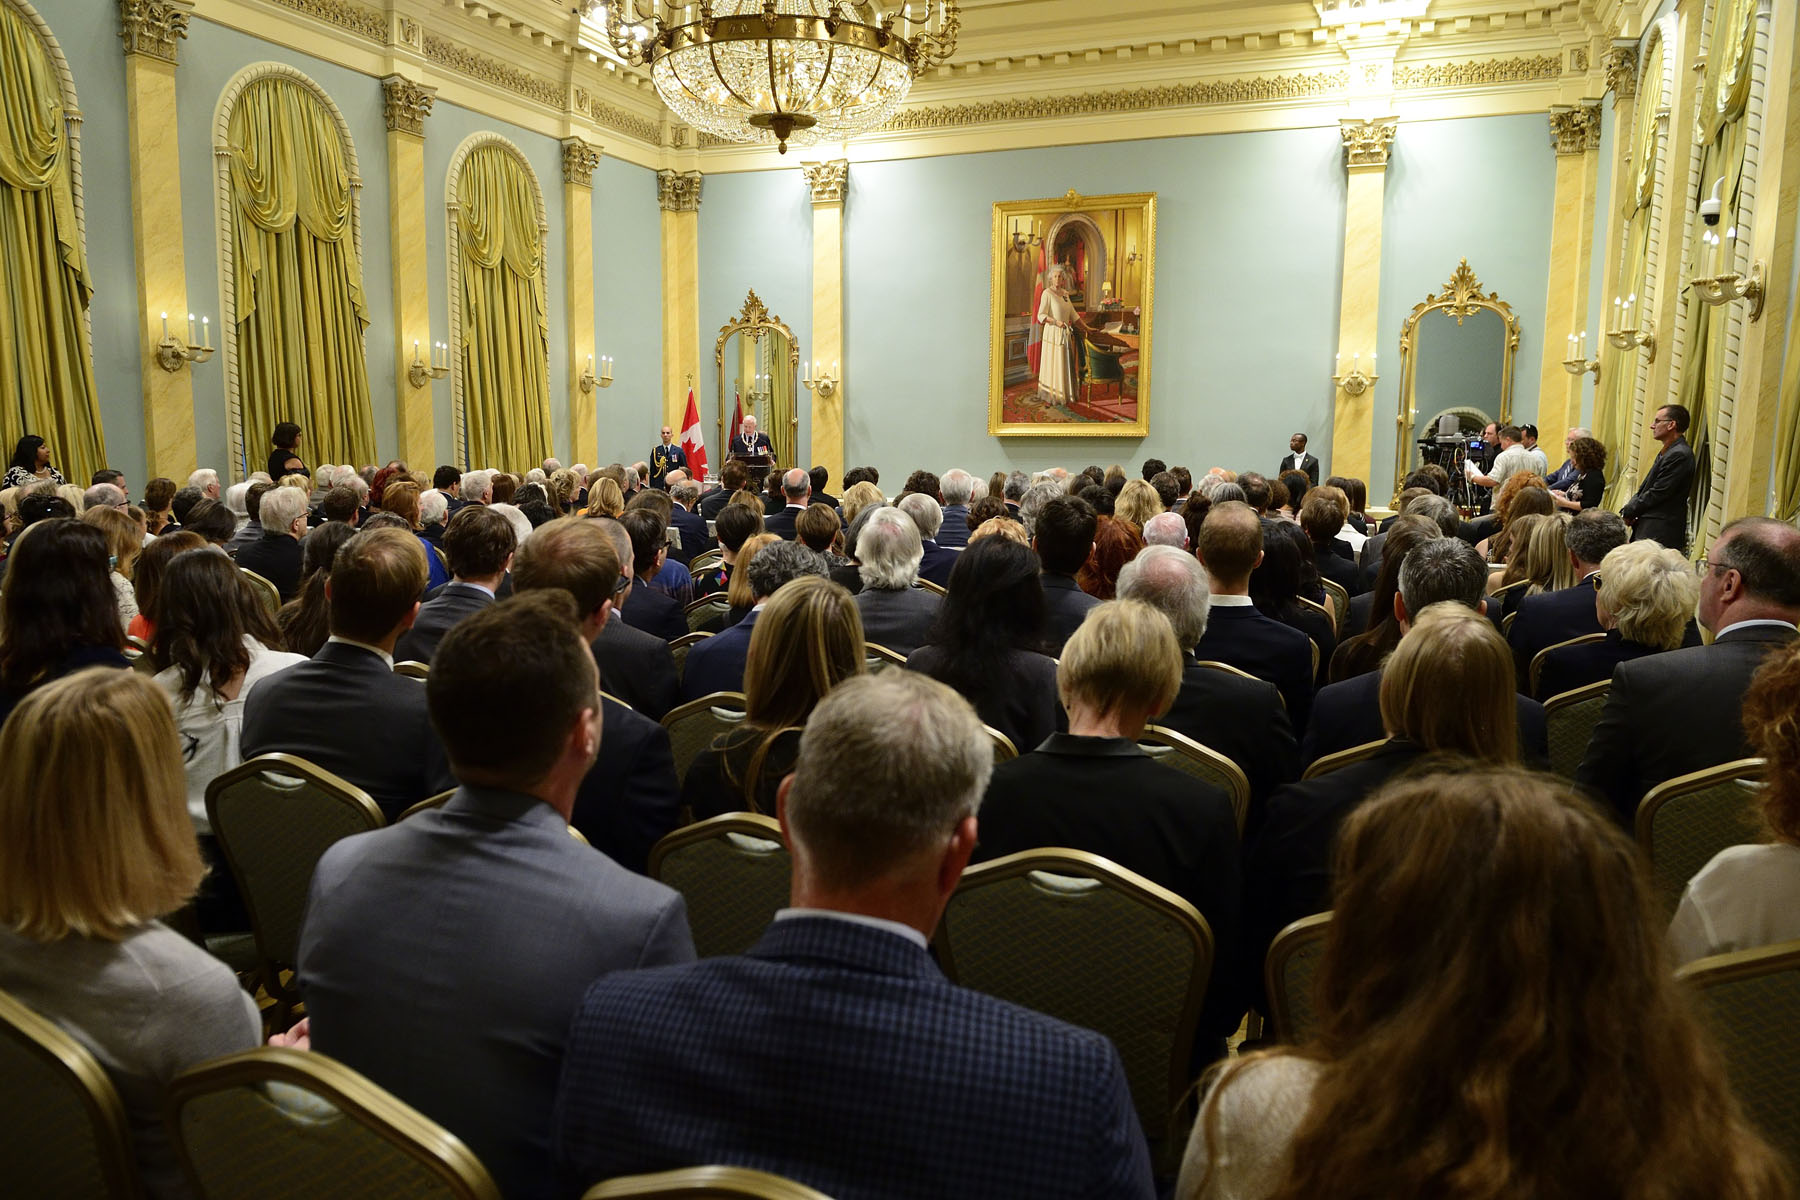 The Governor General presided over an Order of Canada investiture ceremony at Rideau Hall on 